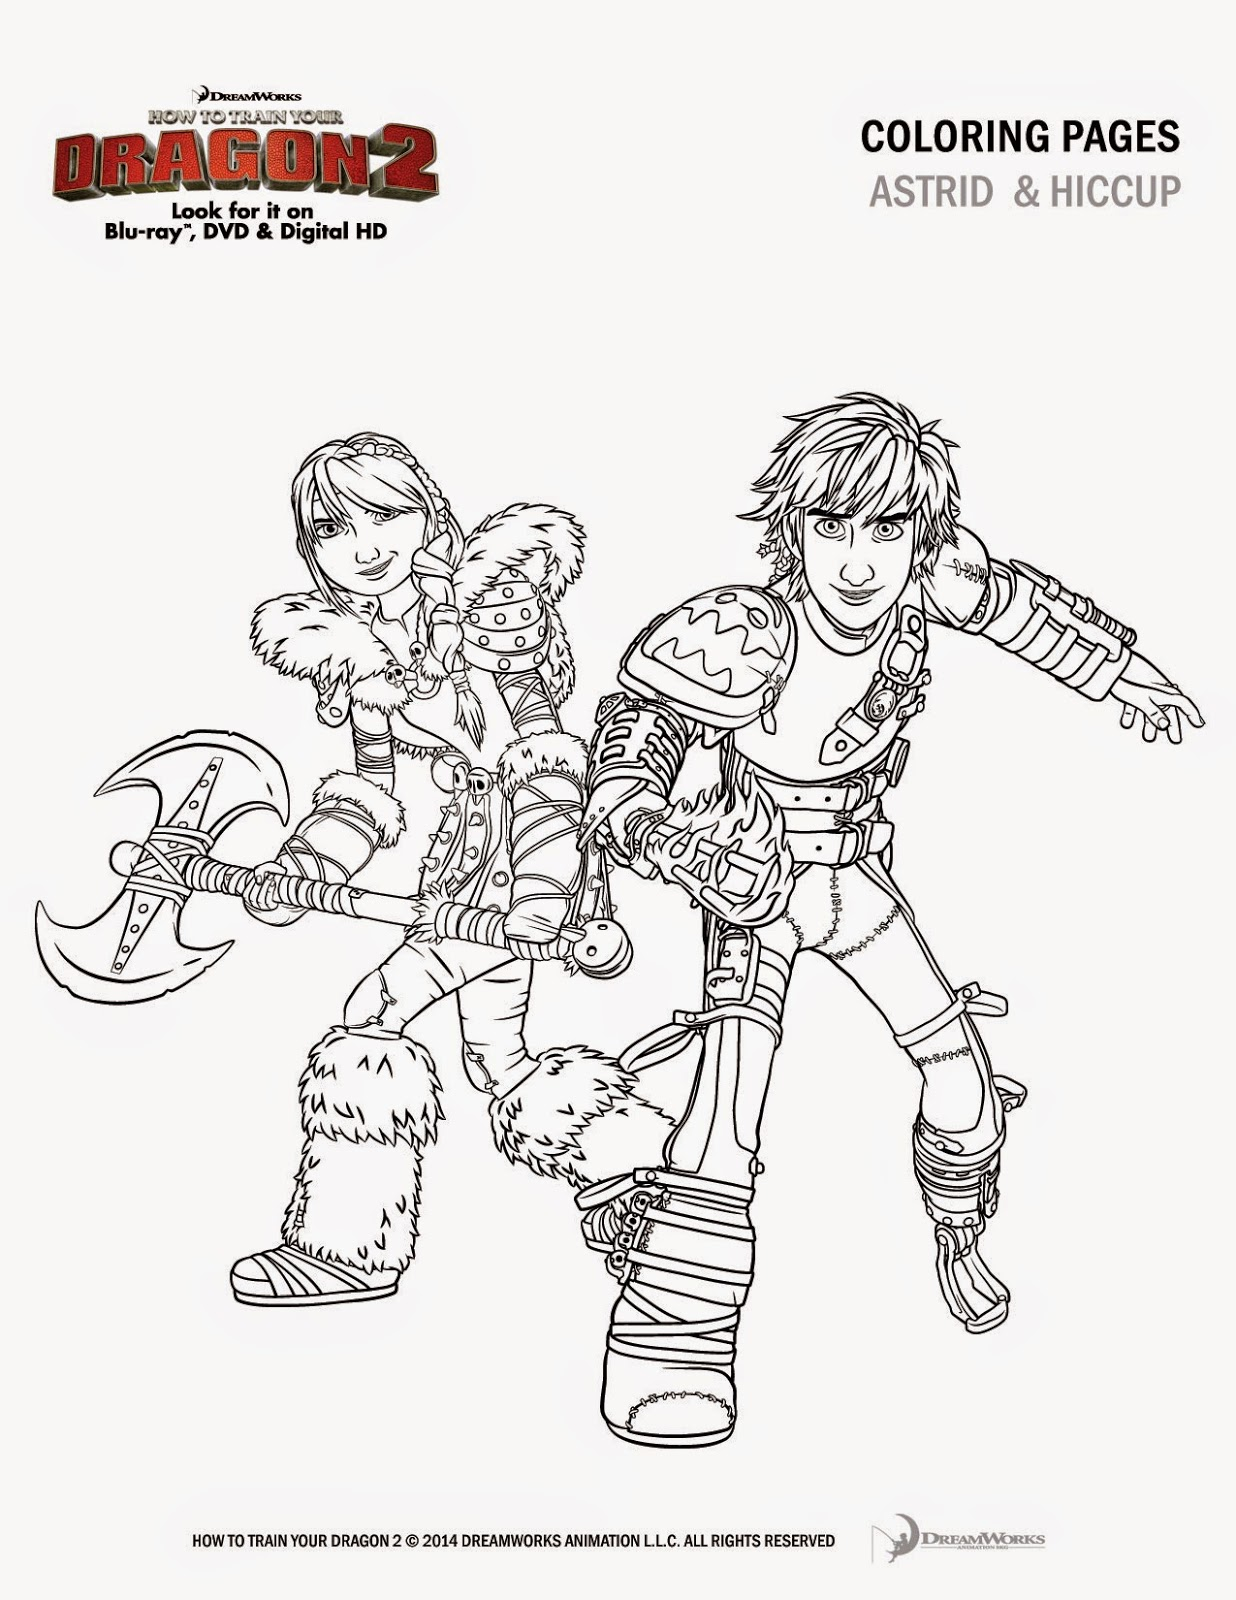 Astrid and Hiccup coloring page